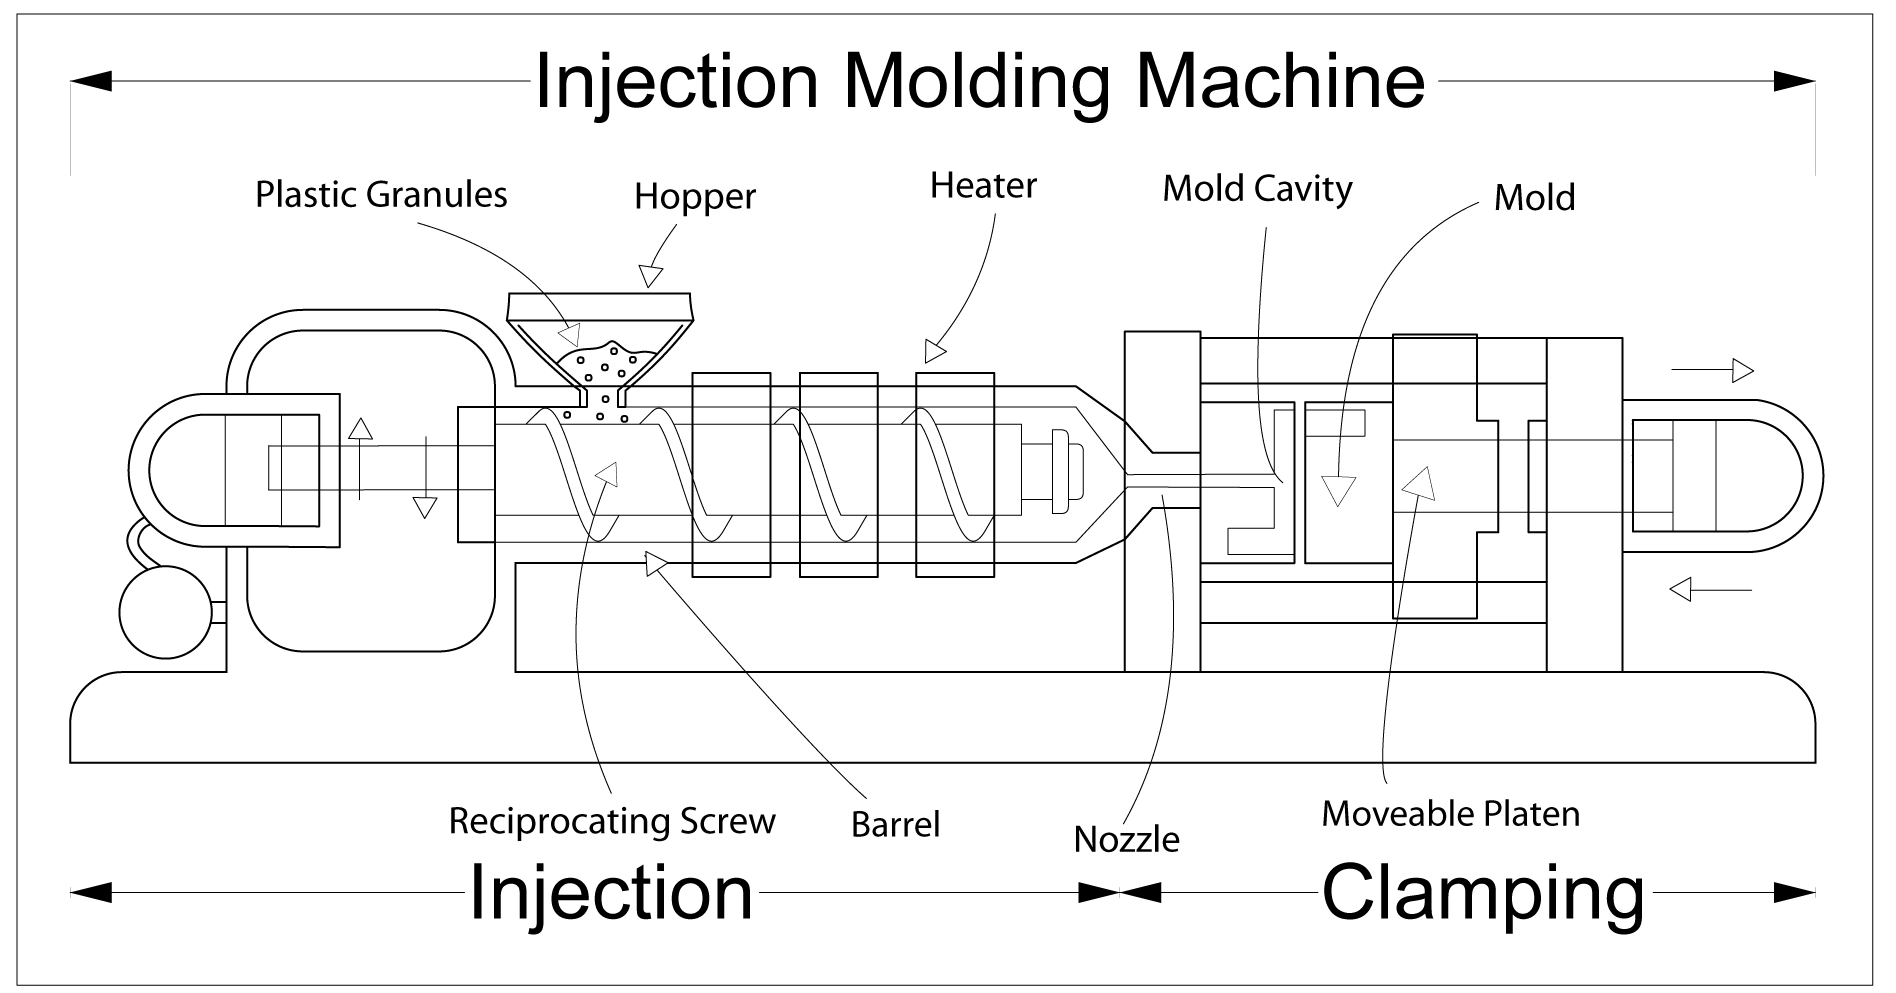 Injection moulding - Wikipedia